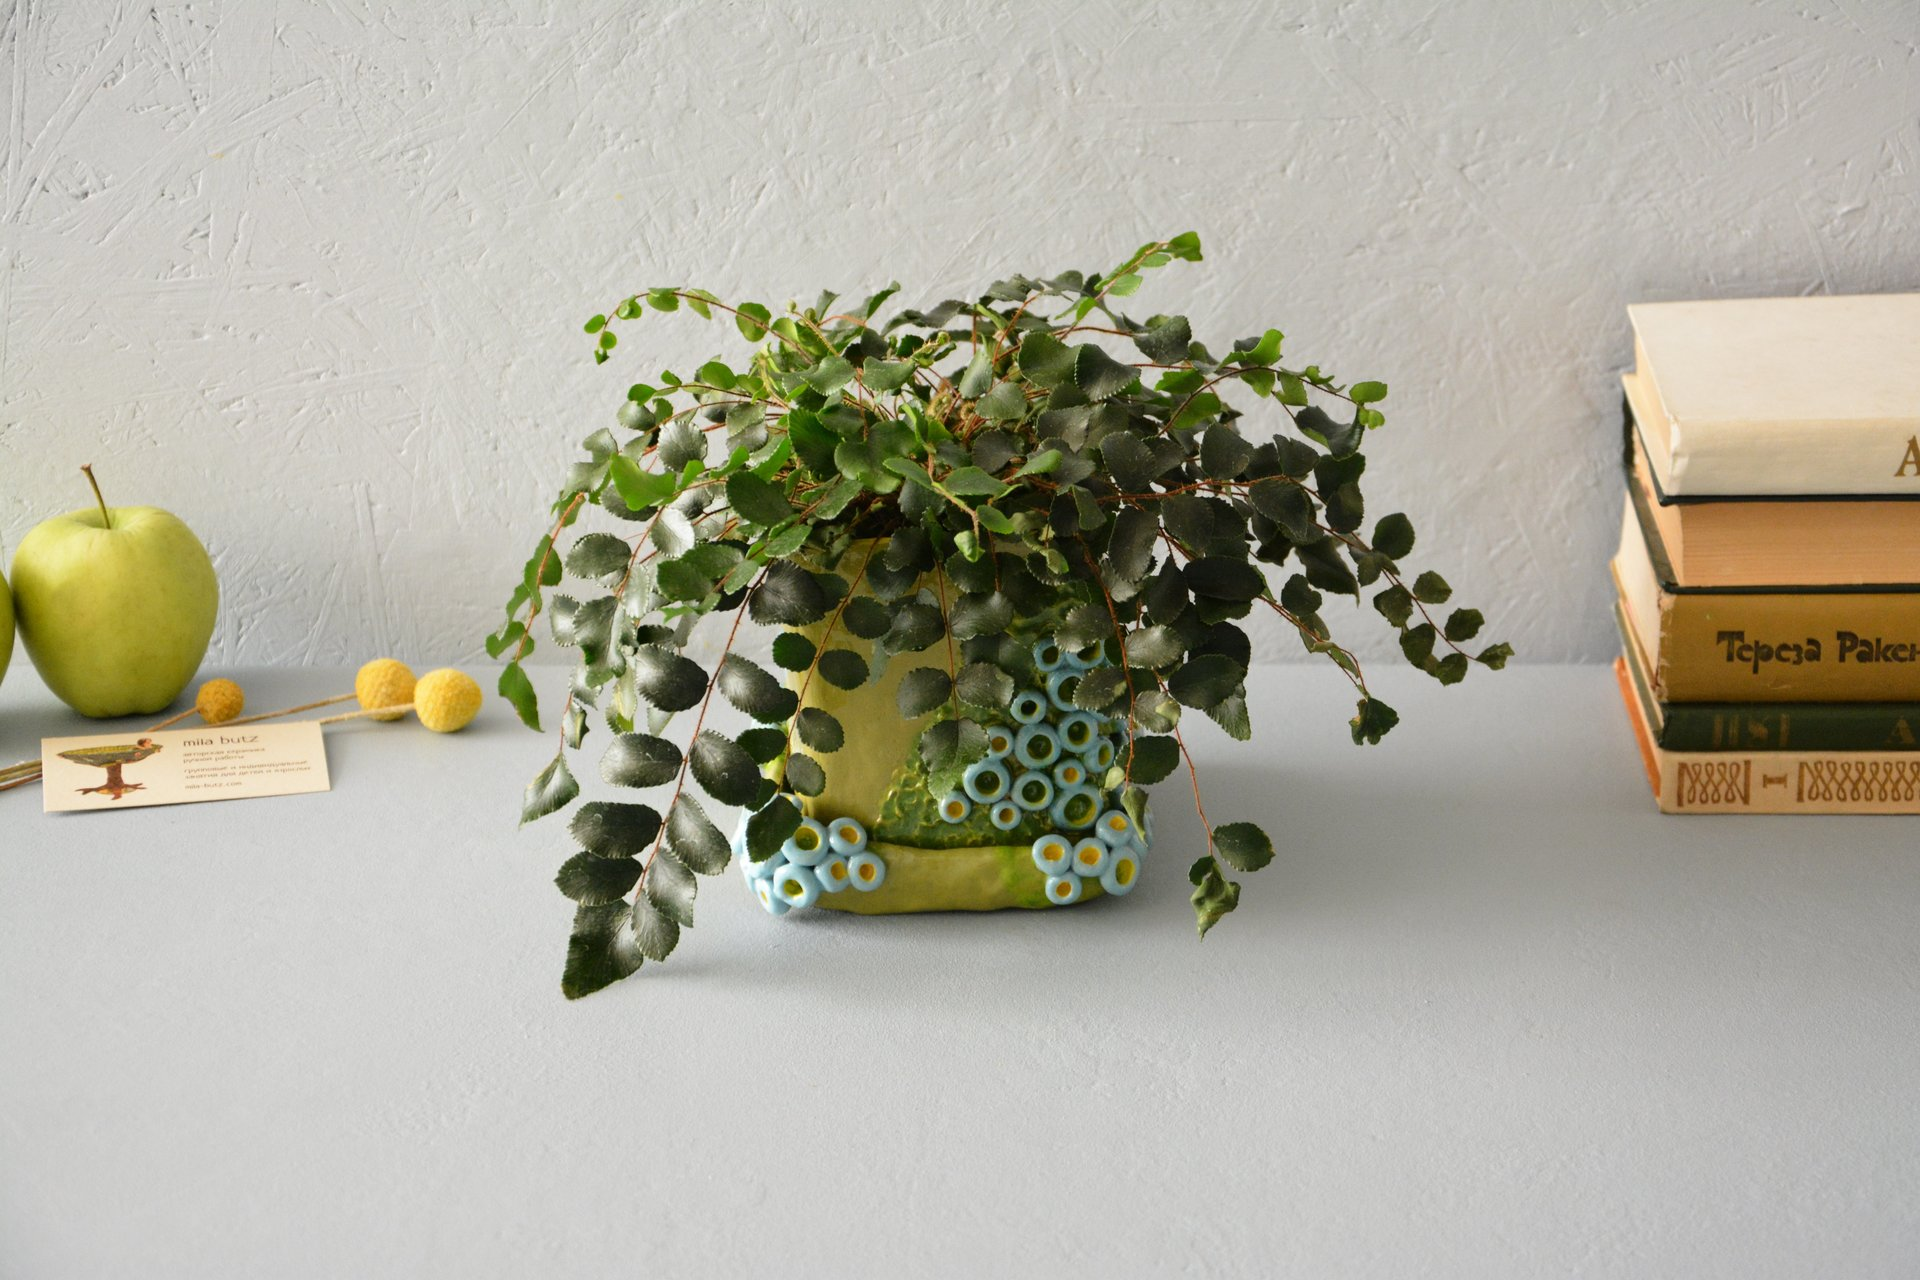 Flowers pot Green cube - Ceramic others utility, height - 12.5 cm, length-width 13 cm * 14 cm, photo 1 of 4.